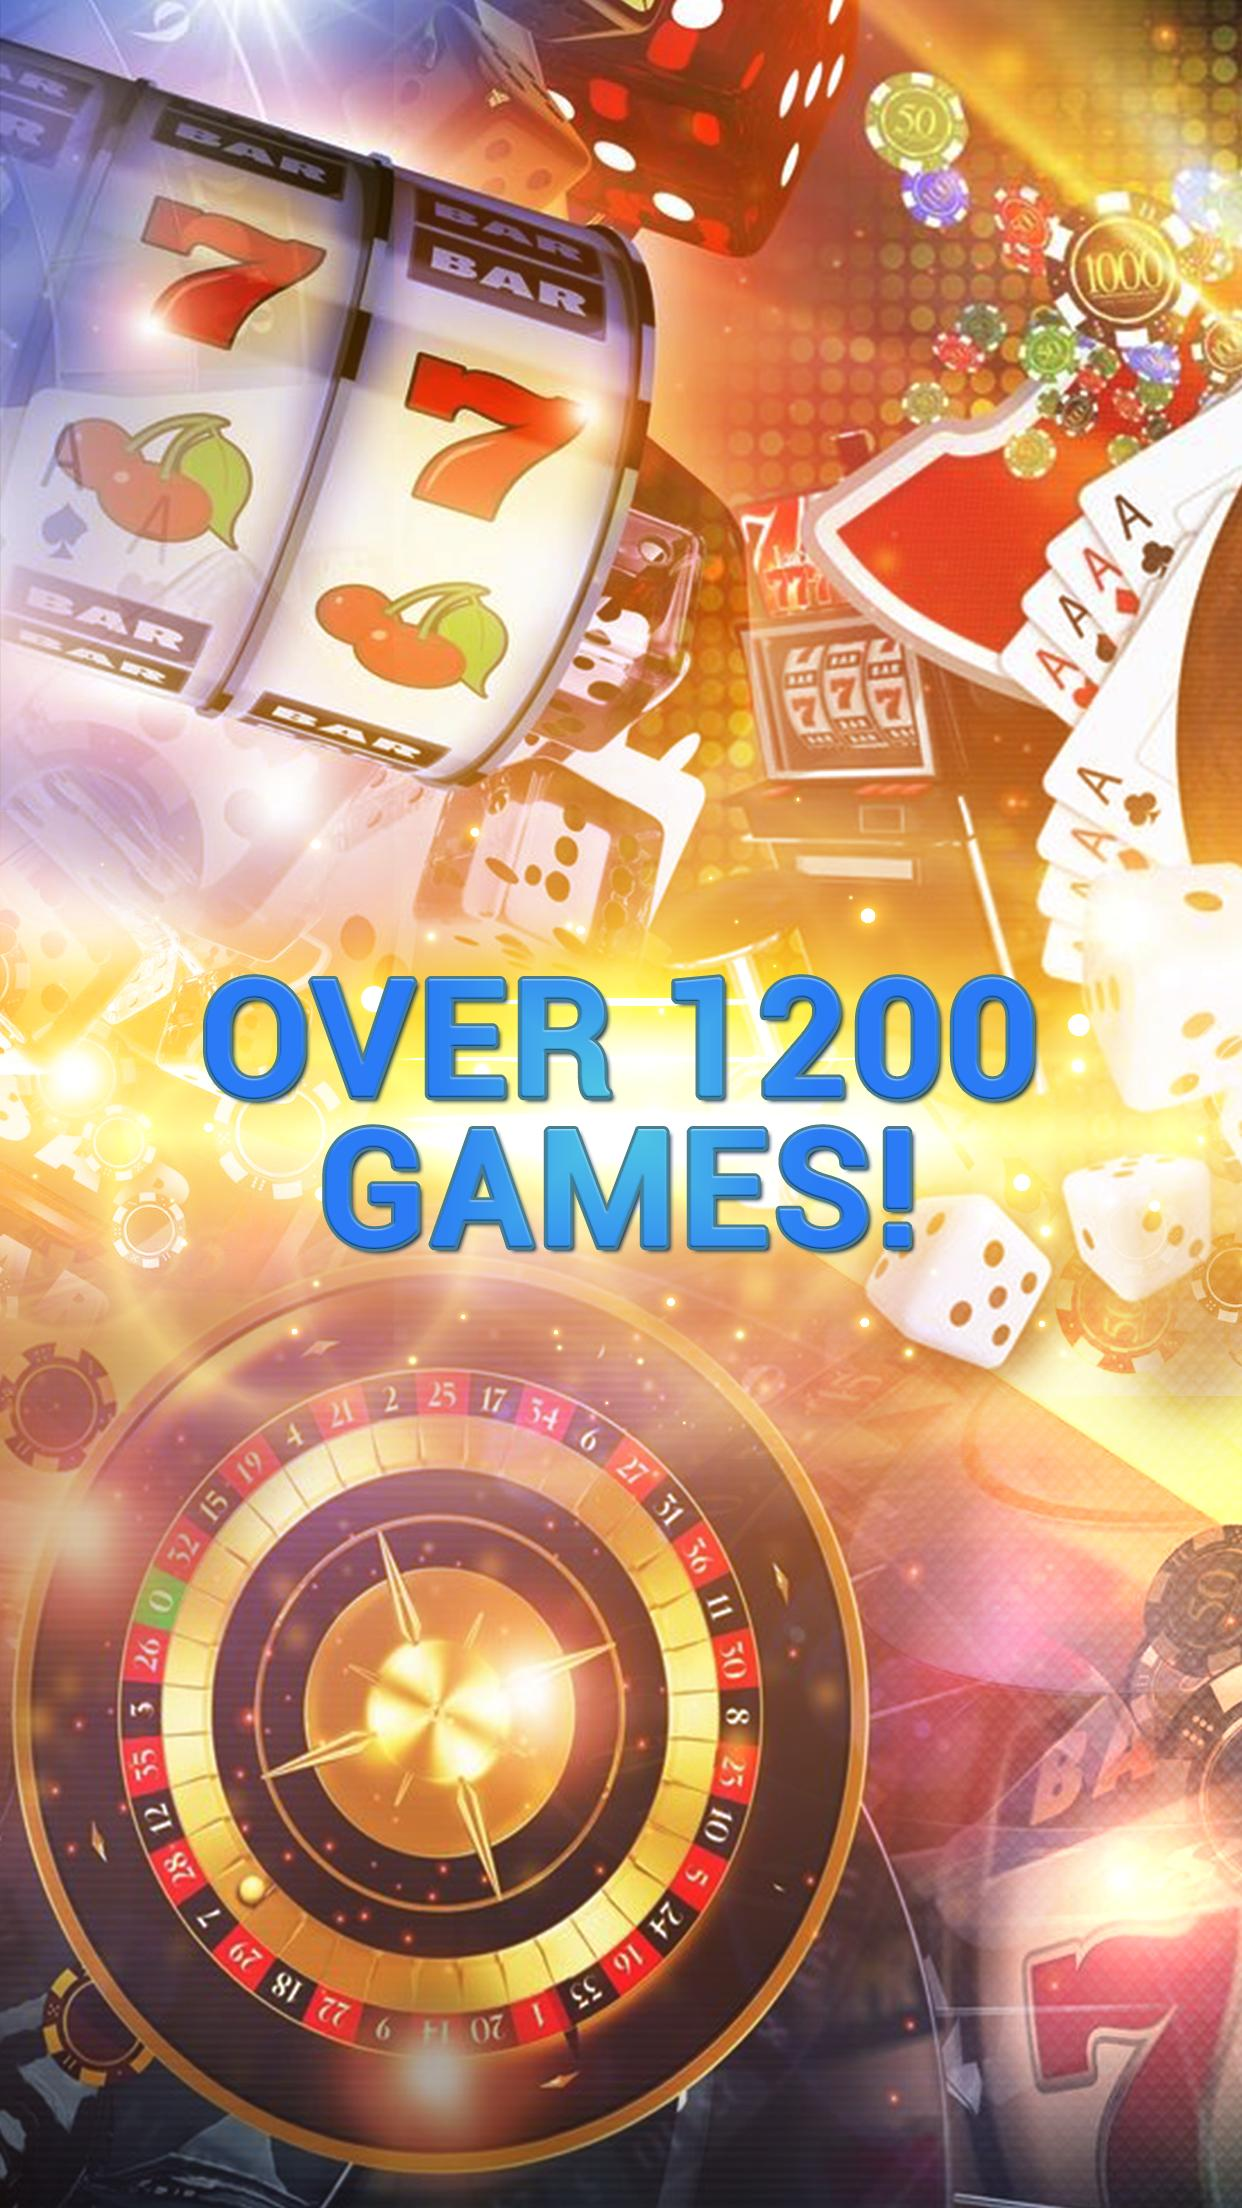 Online Casino on the Cruise - Mobile Slots App 1.0 Screenshot 2